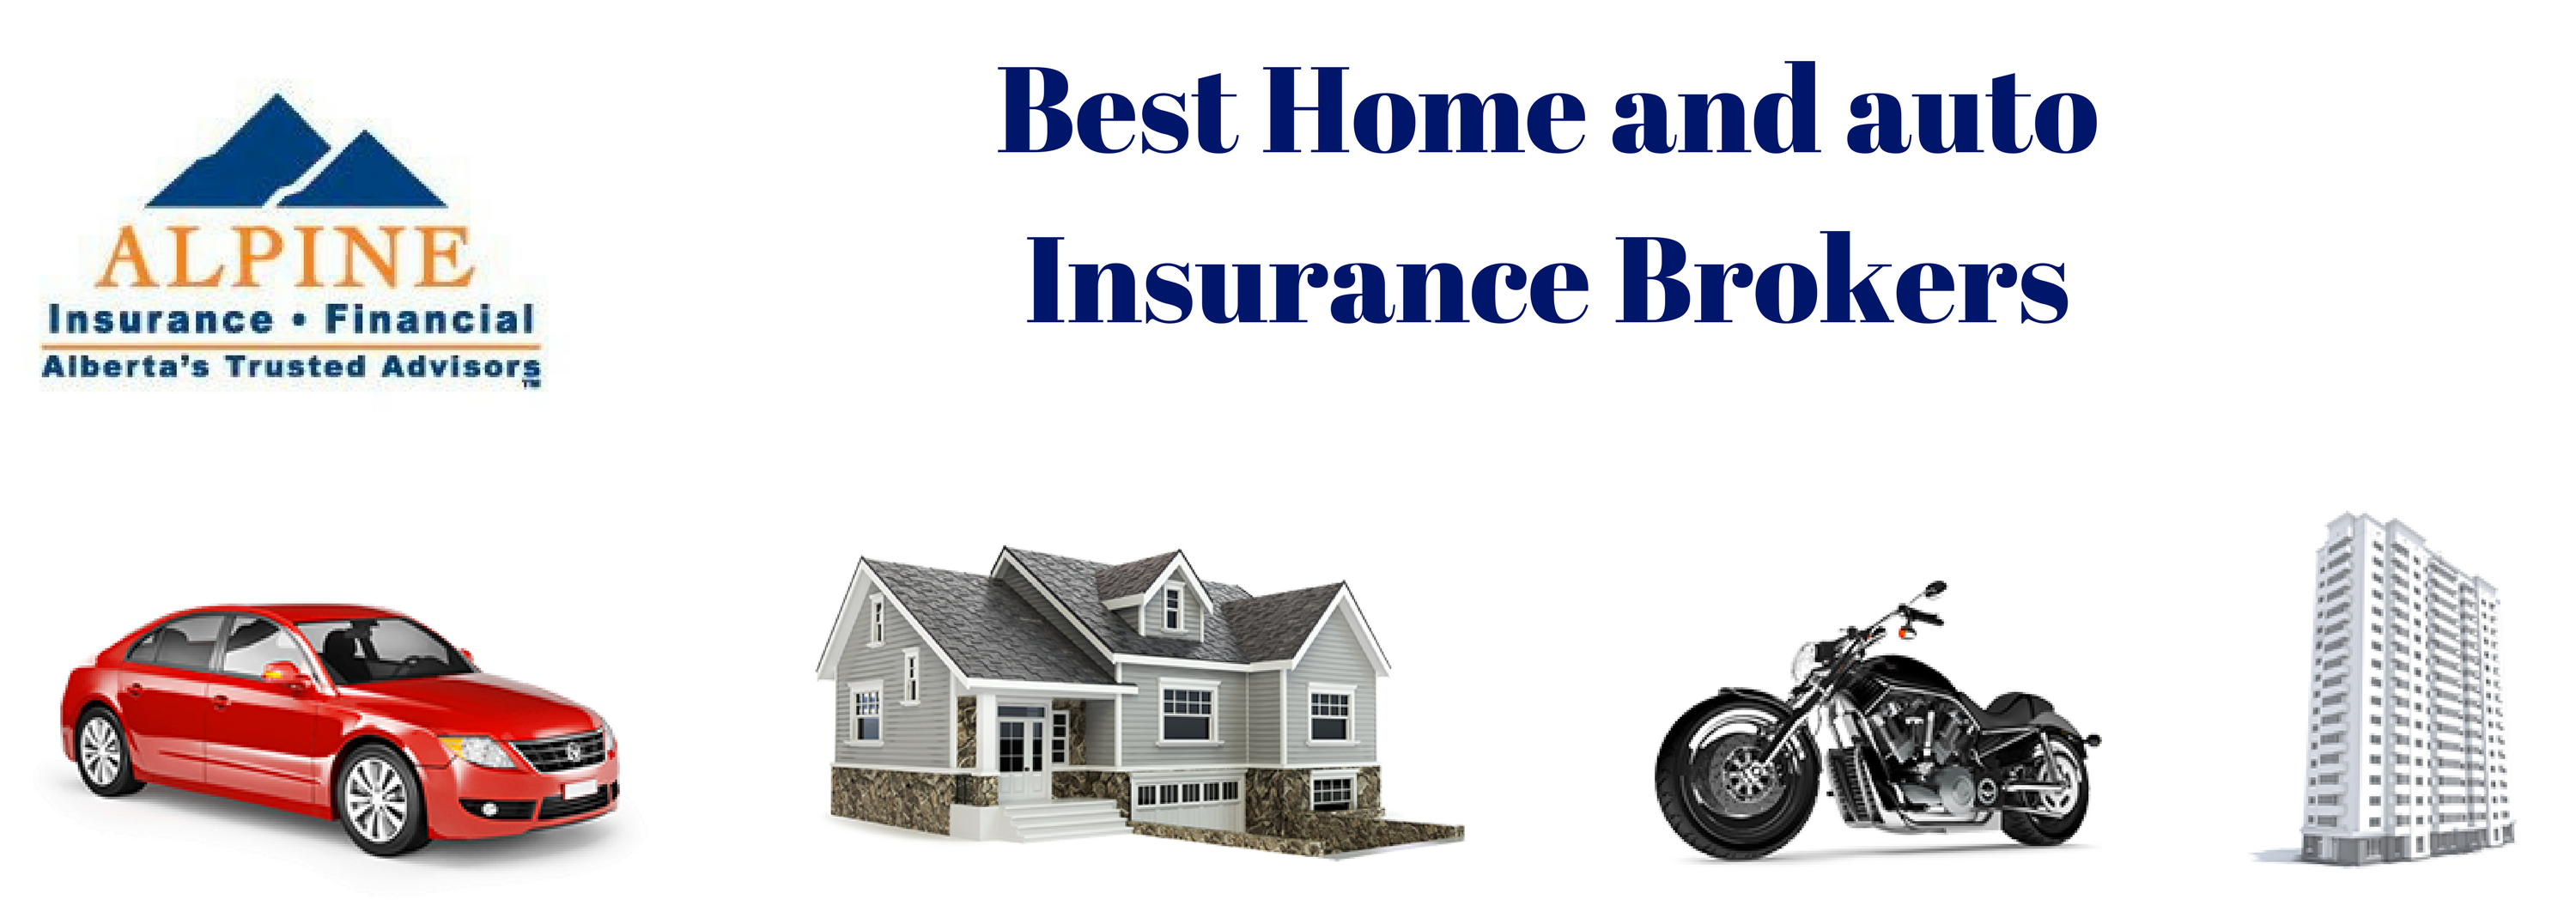 Home Insurance Brokers Home Insurance Insurance Broker